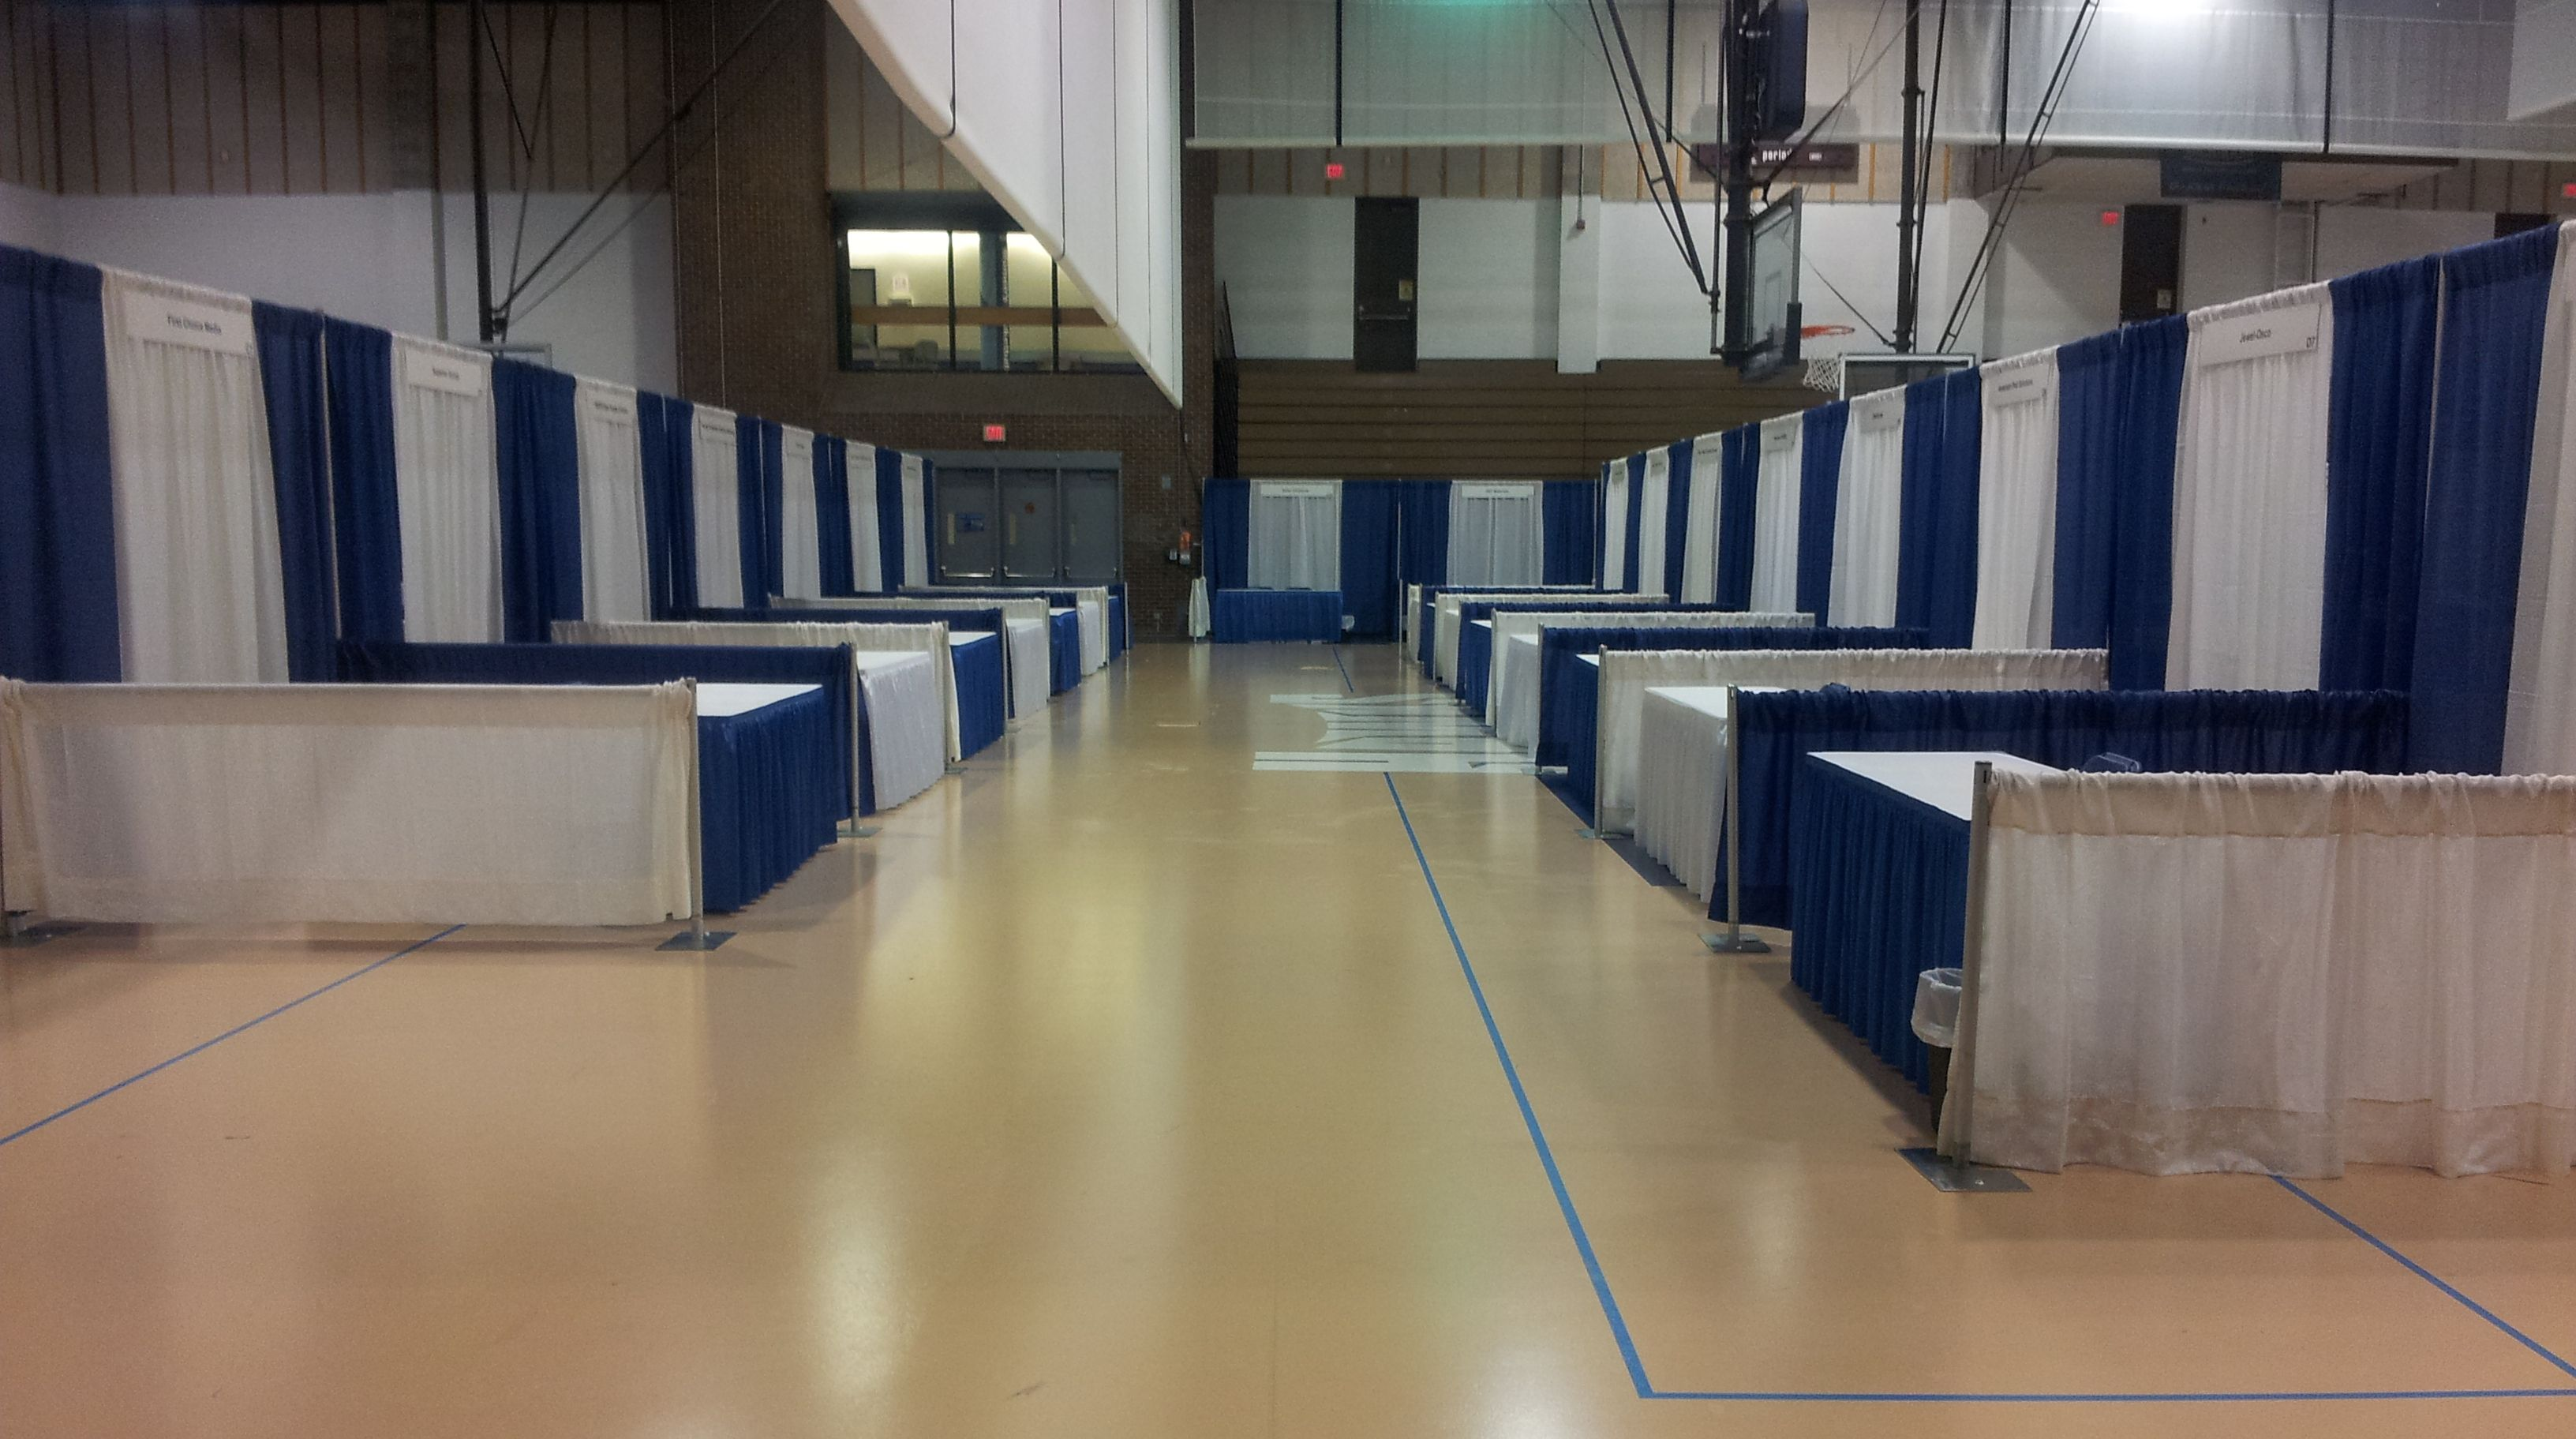 Pipe and Drape Booths in Gym Rent Pipe & Drape Exhibit Booths - Burr Ridge, 60527